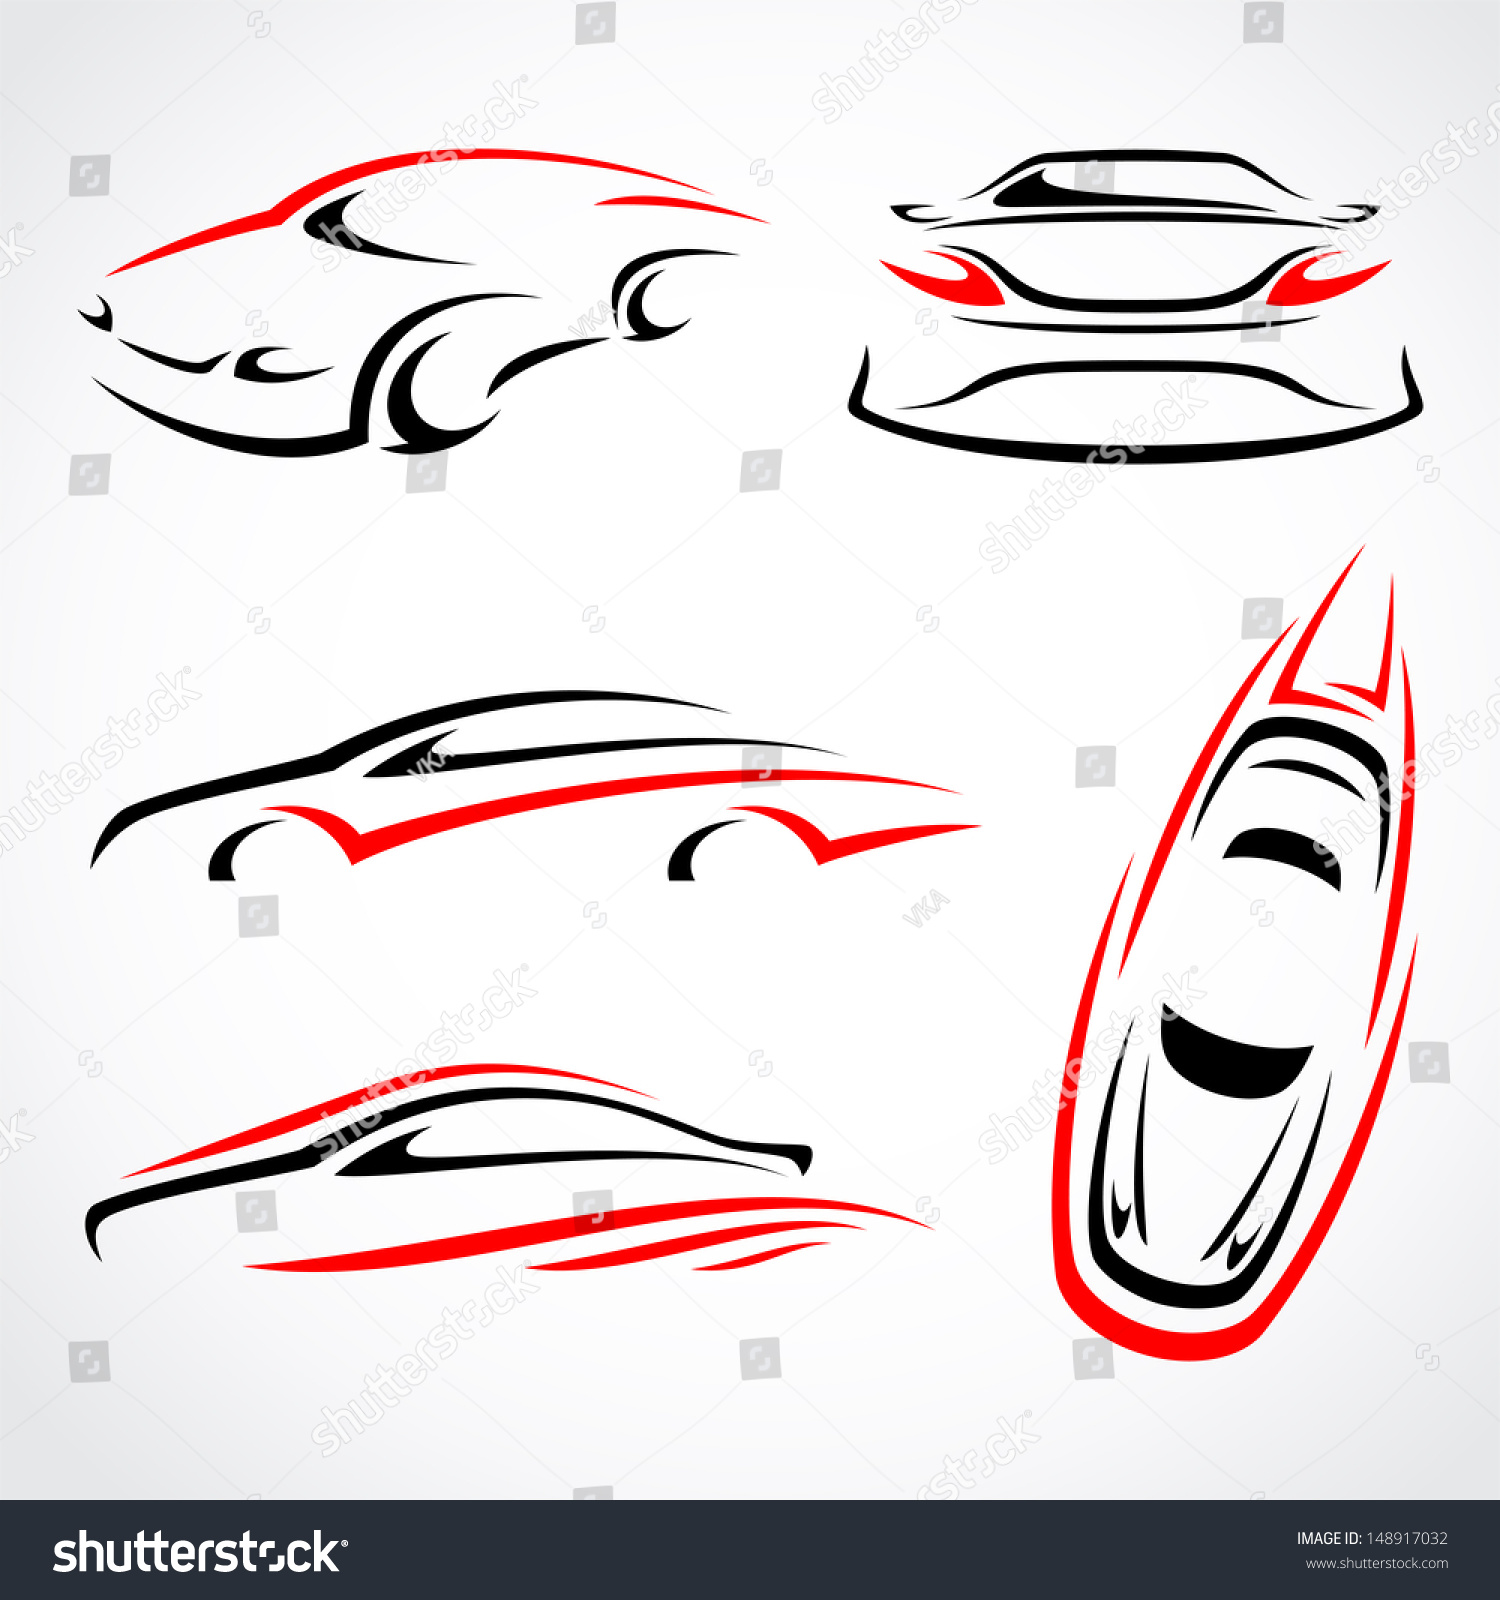 Vector Drawing Lines Questions : Online image photo editor shutterstock